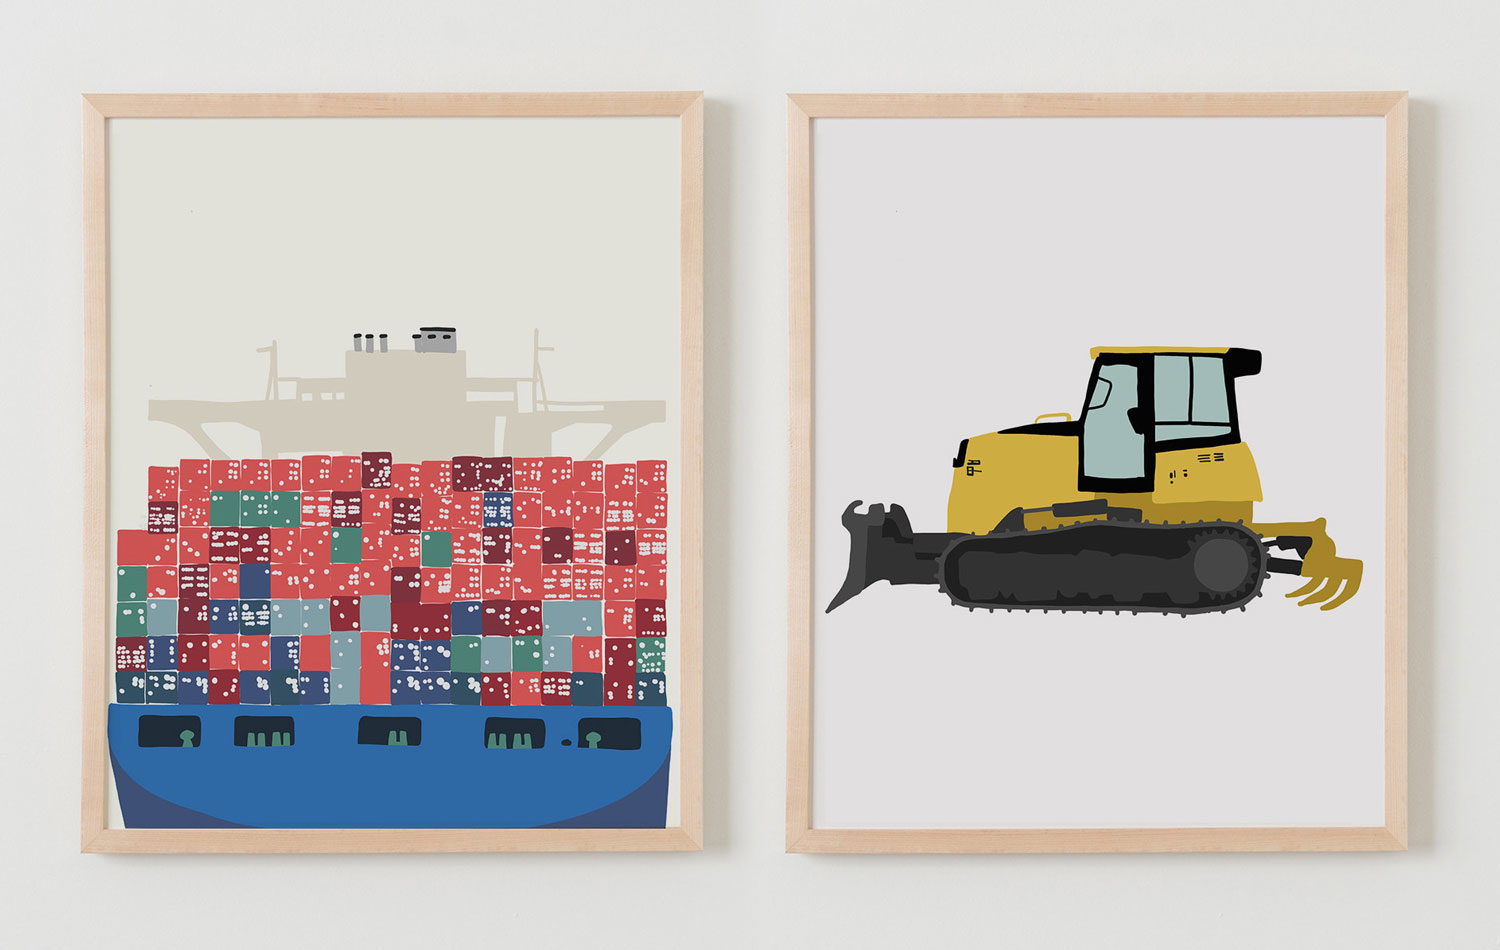 Shipping container and digger artwork by Jorey Hurley